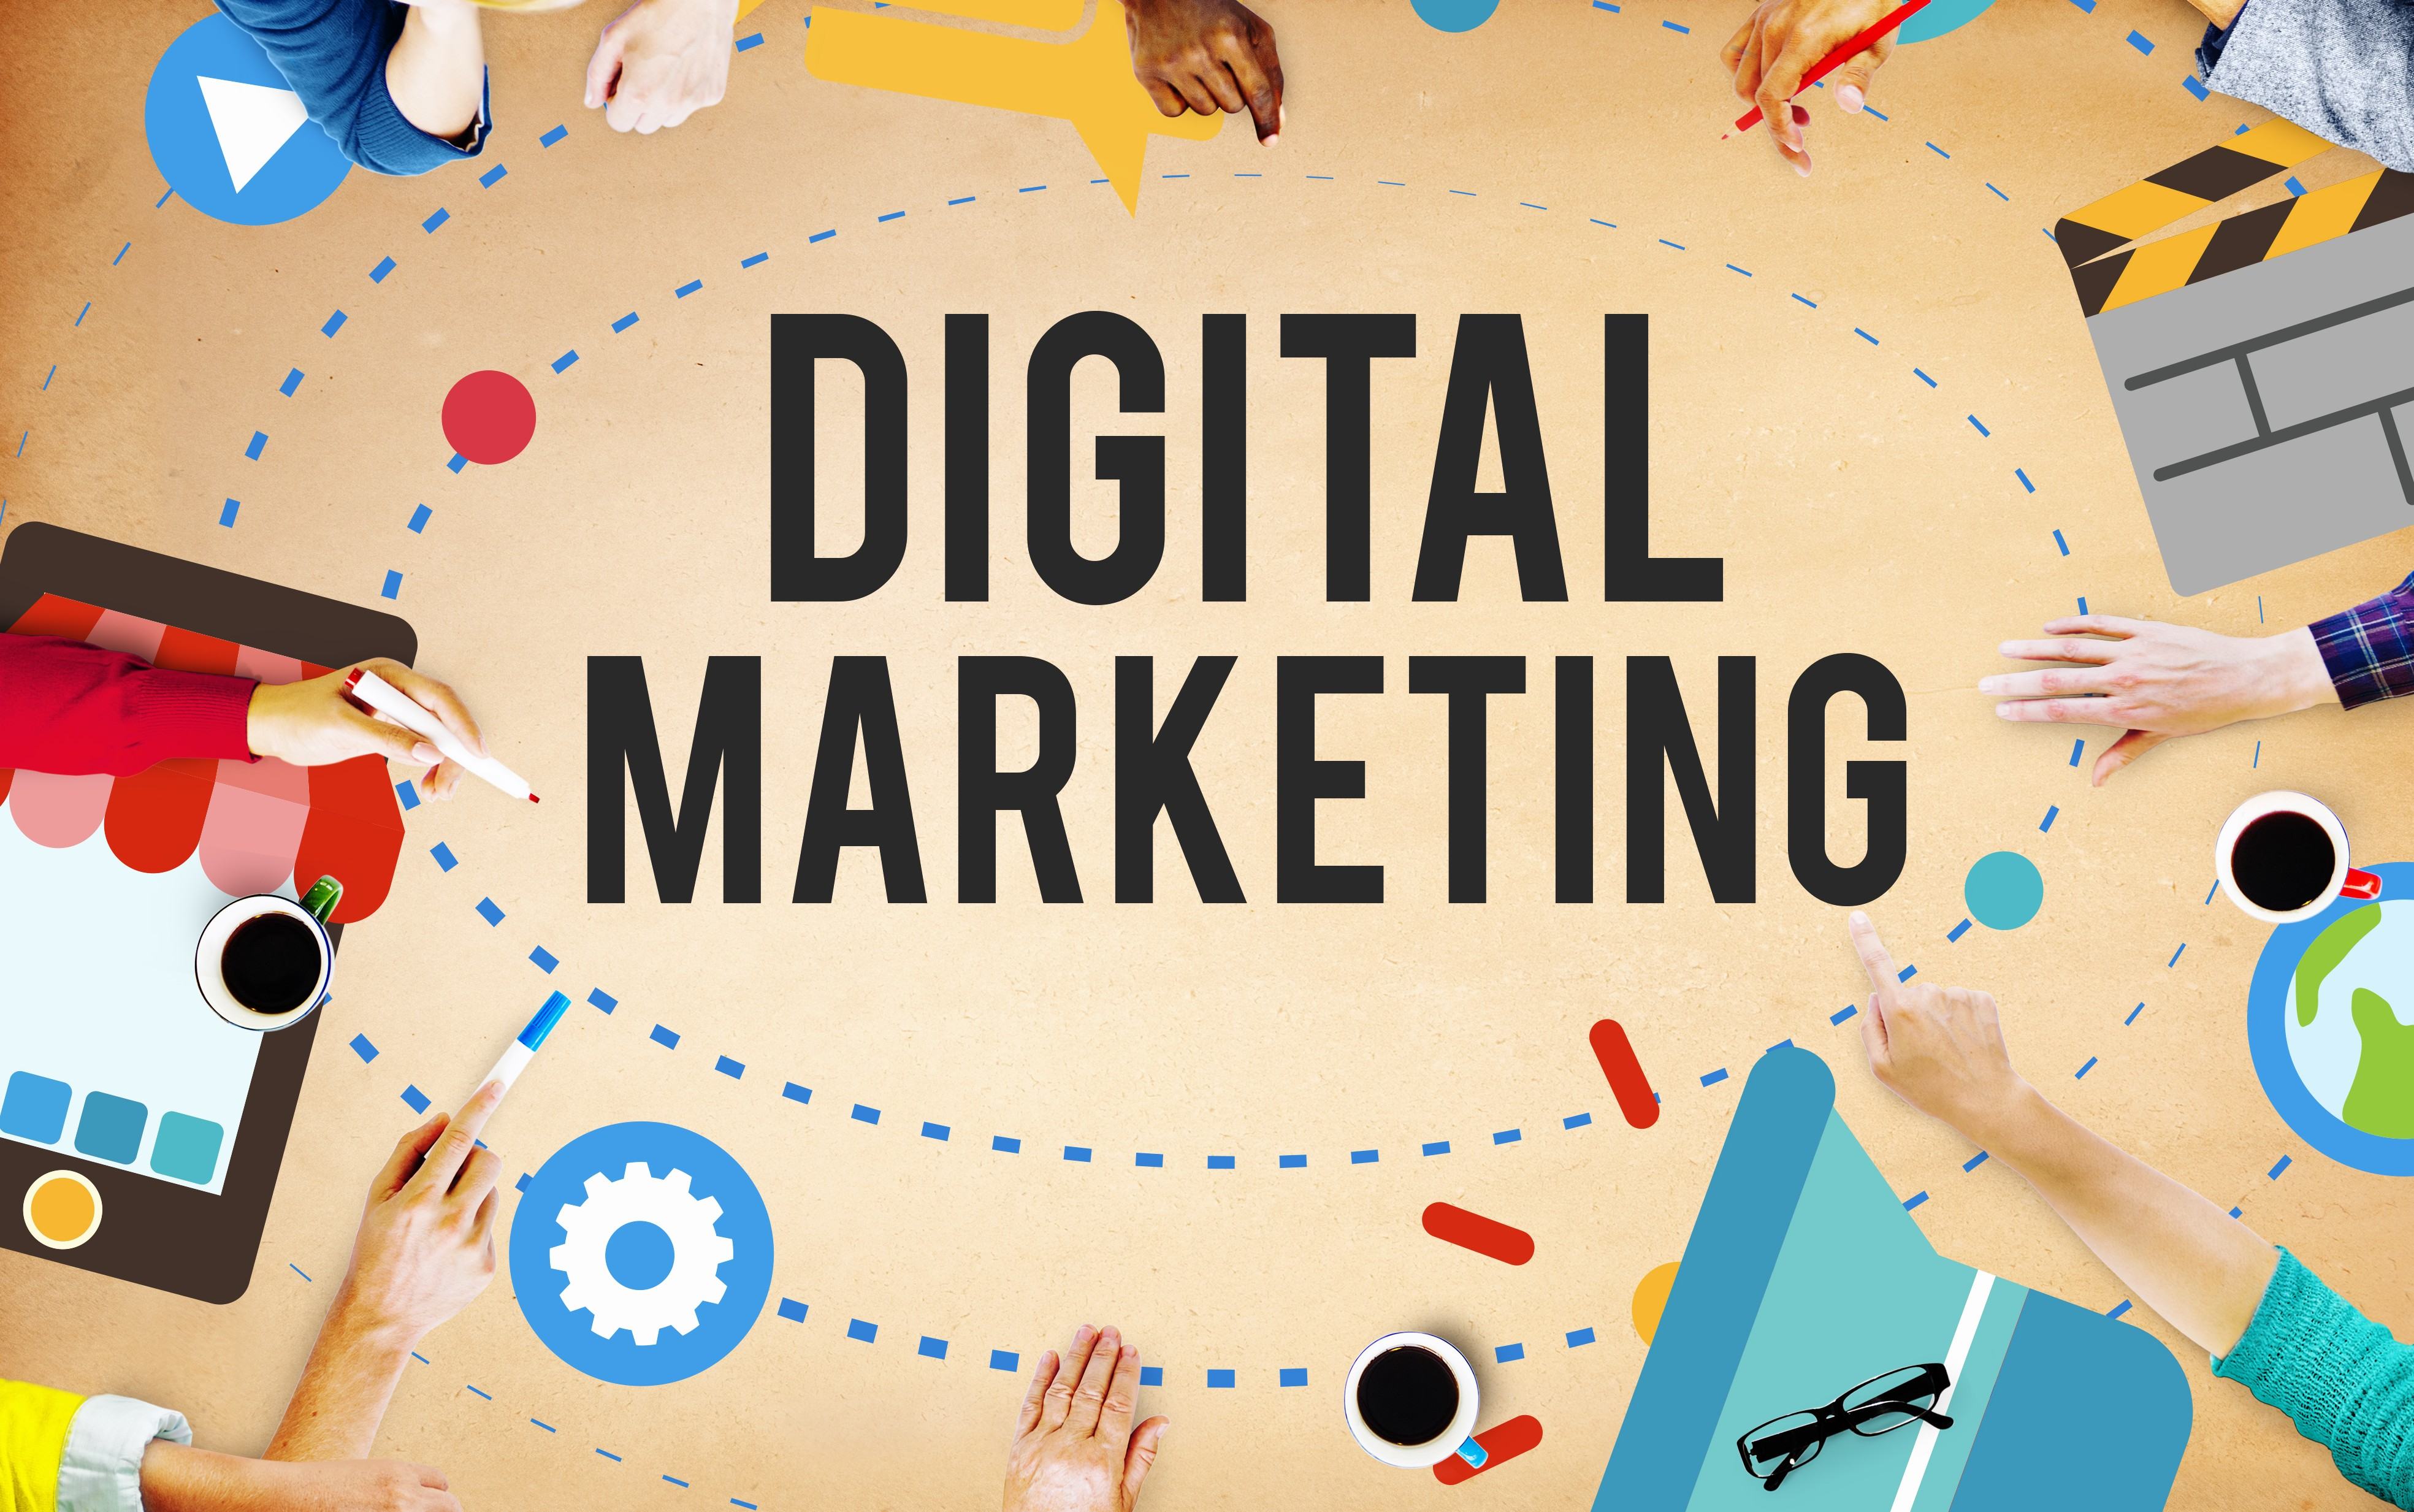 How to start career in Digital Marketing?